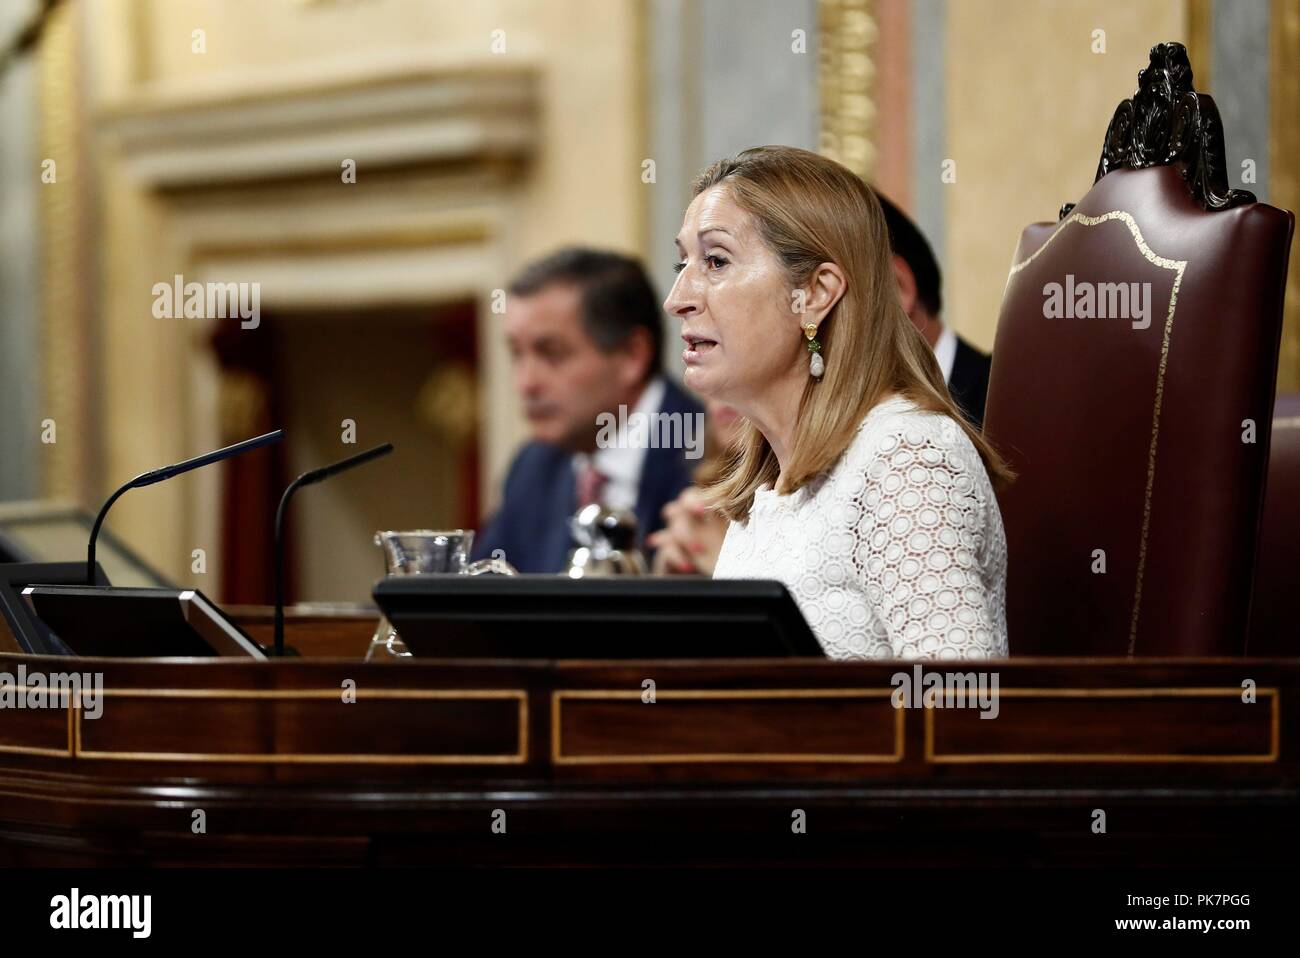 Madrid, Spain. 12th Sep, 2018. Speaker of the Spanish Lower House, Ana Pastor, attends question time at Parliament in Madrid, Spain, 12 September 2018. Credit: Mariscal/EFE/Alamy Live News - Stock Image